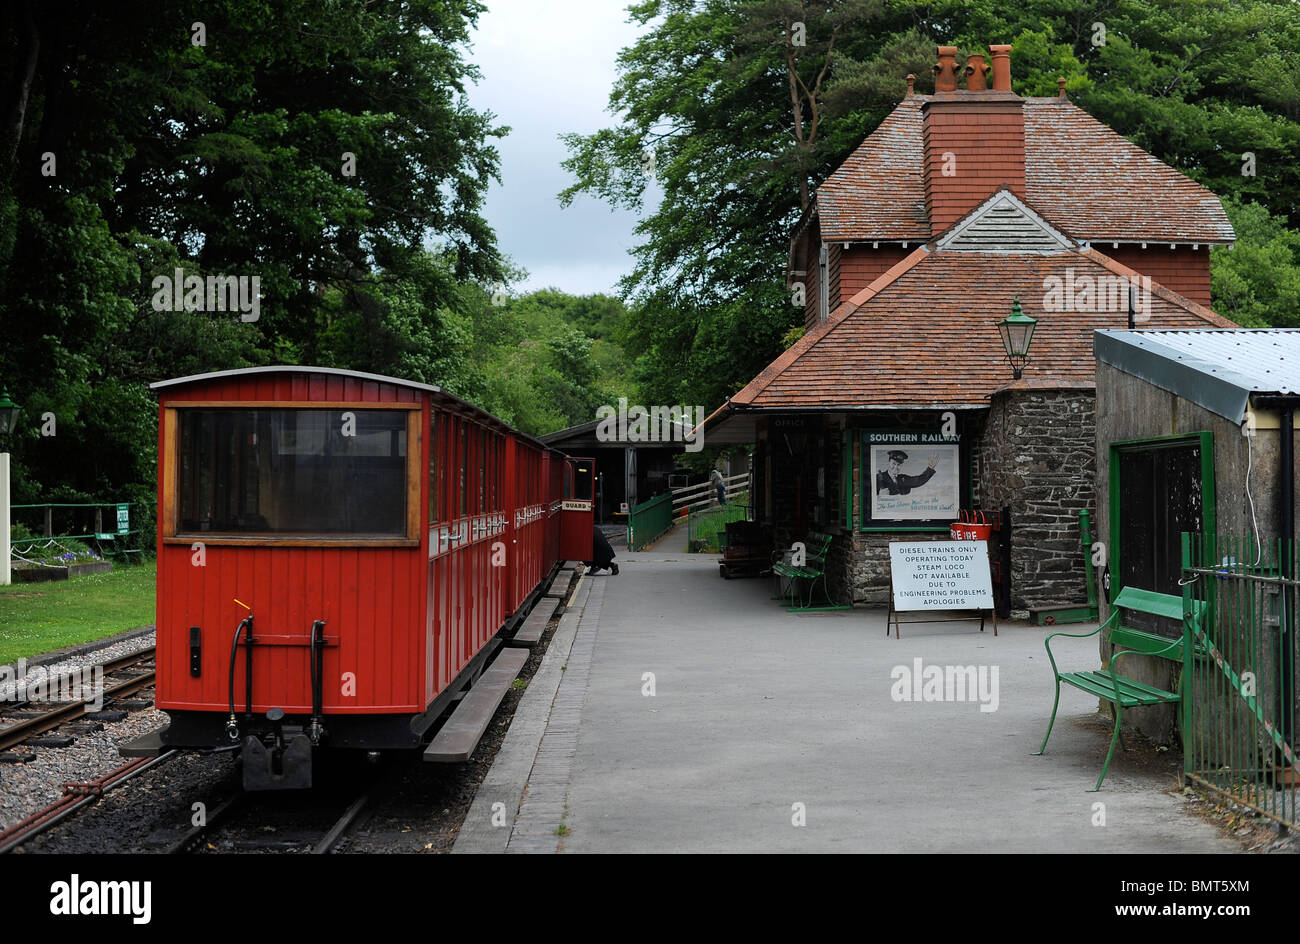 A train sits at Woody Bay Train Station, North Devon - Stock Image